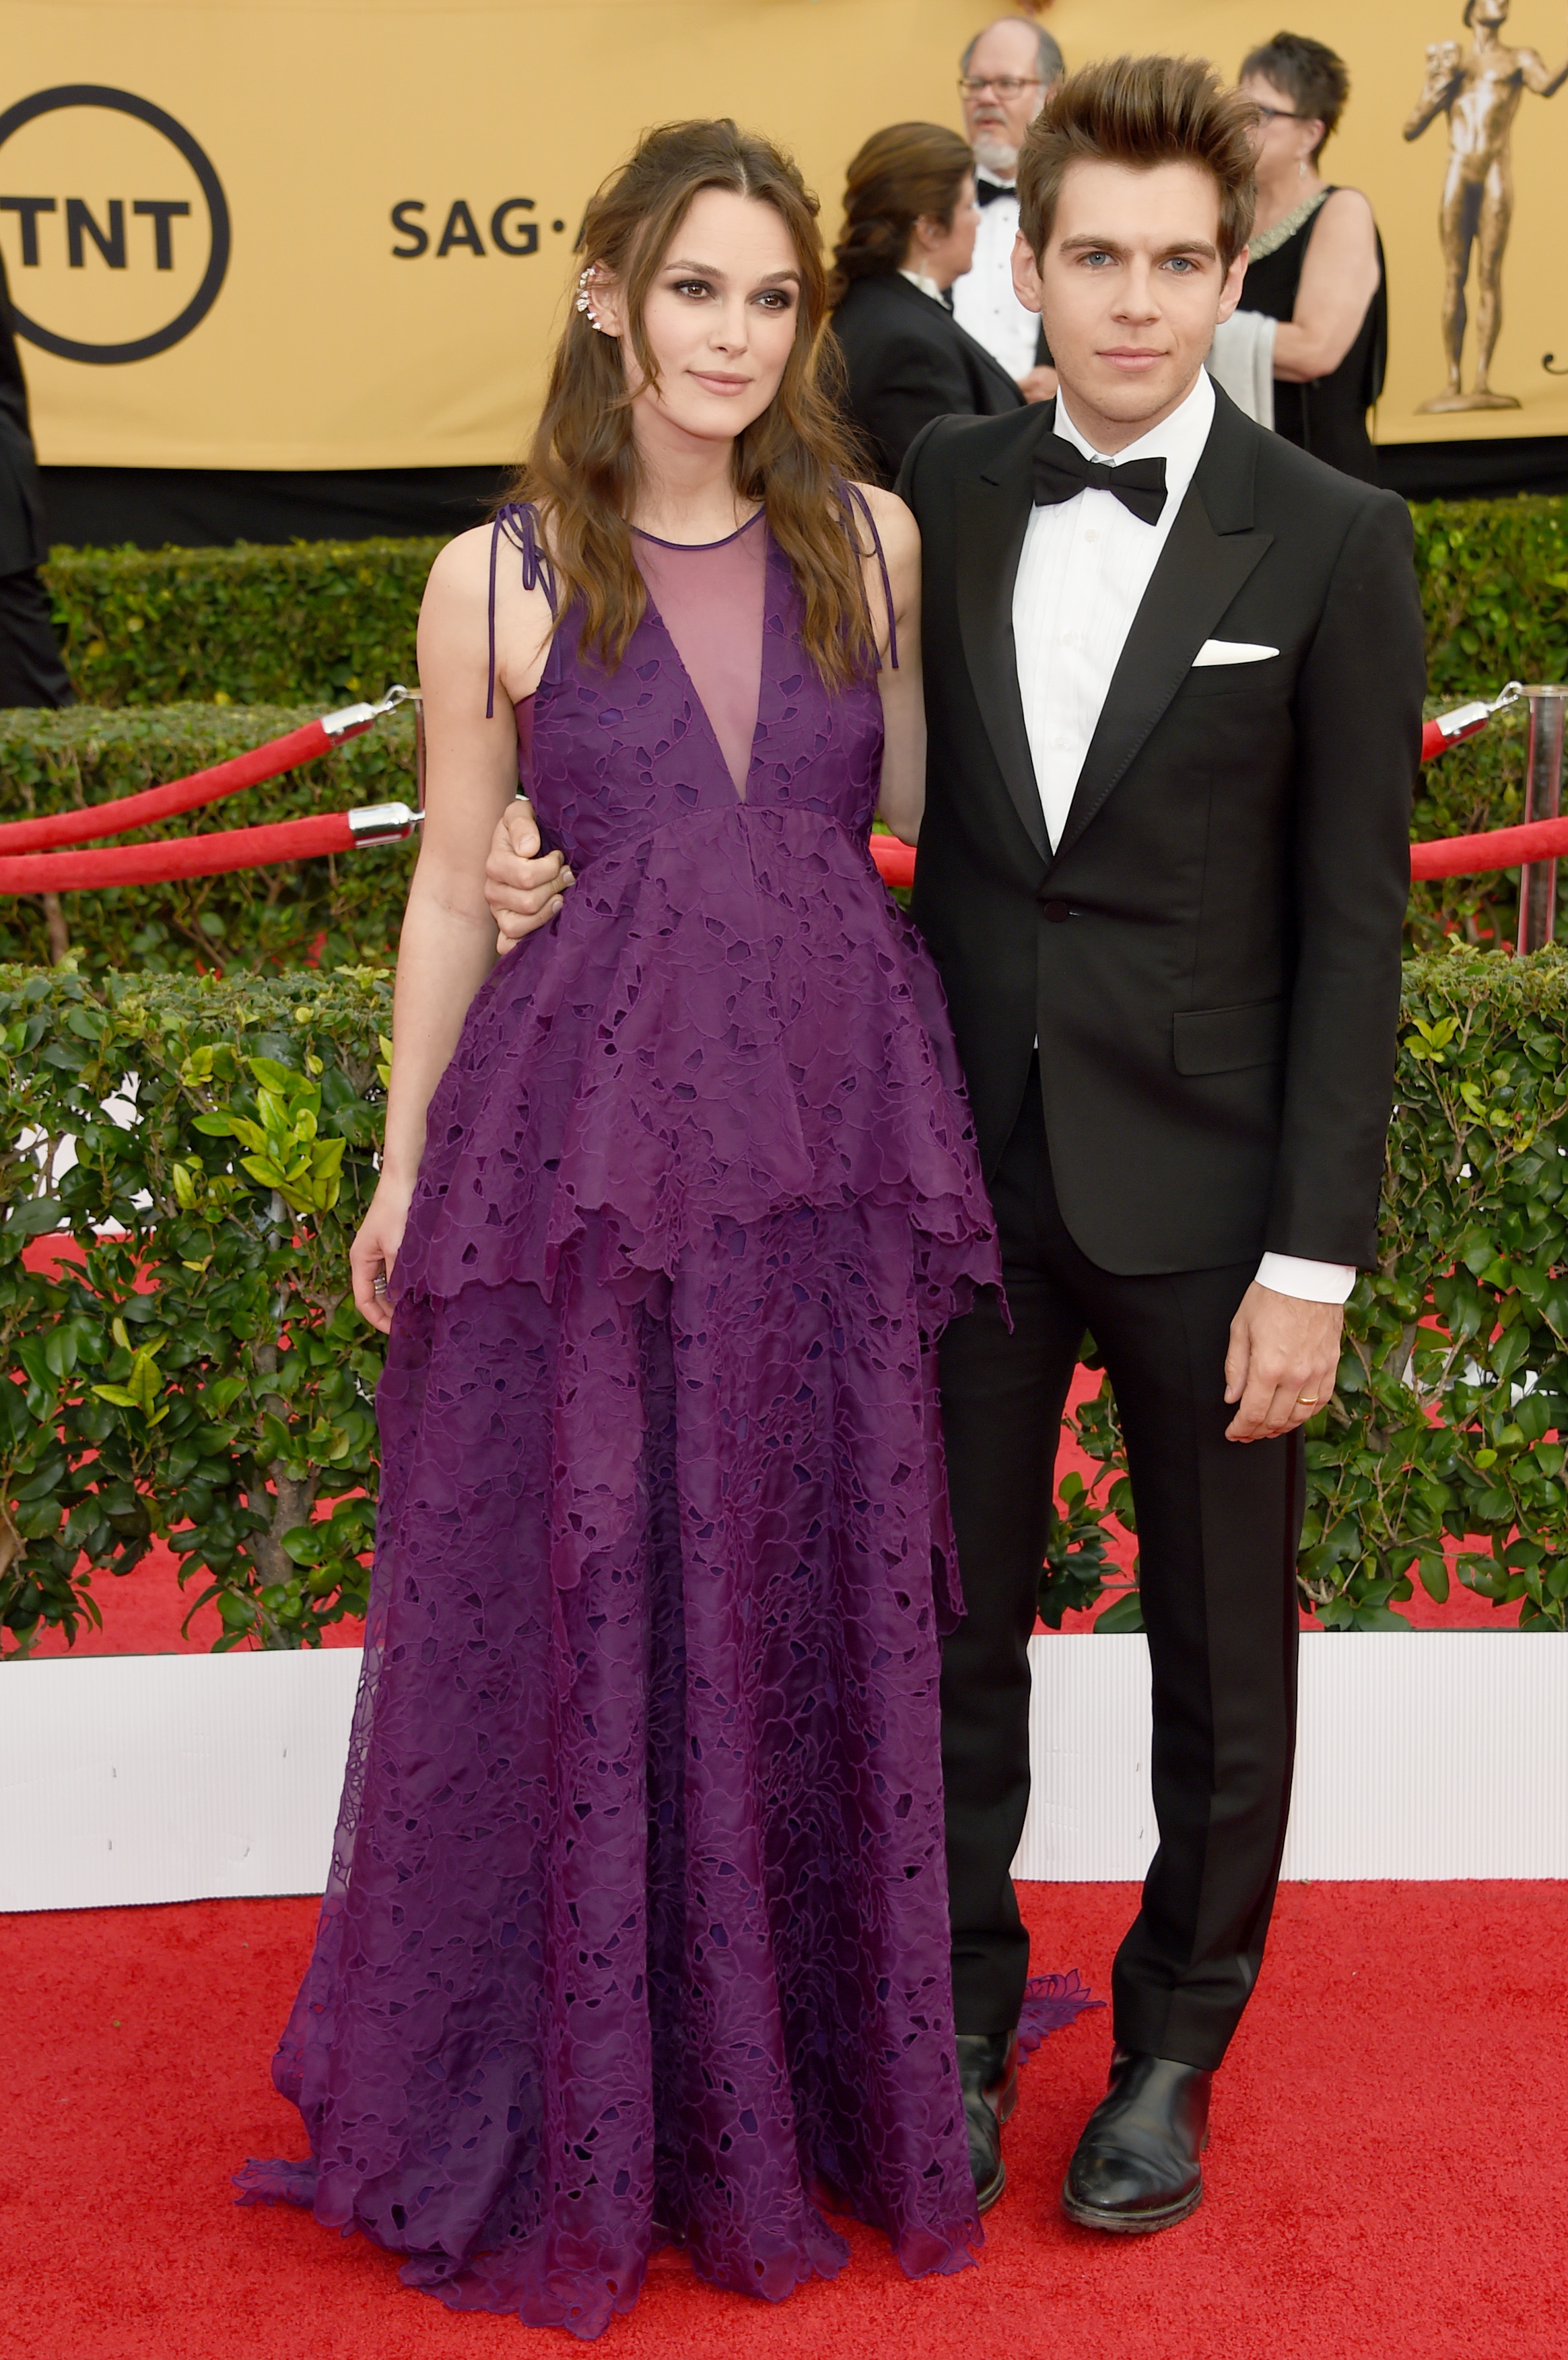 LOS ANGELES, CA - JANUARY 25: Actress Keira Knightley (L) and James Righton attend the 21st Annual Screen Actors Guild Awards at The Shrine Auditorium on January 25, 2015 in Los Angeles, California. (Photo by Ethan Miller/Getty Images)